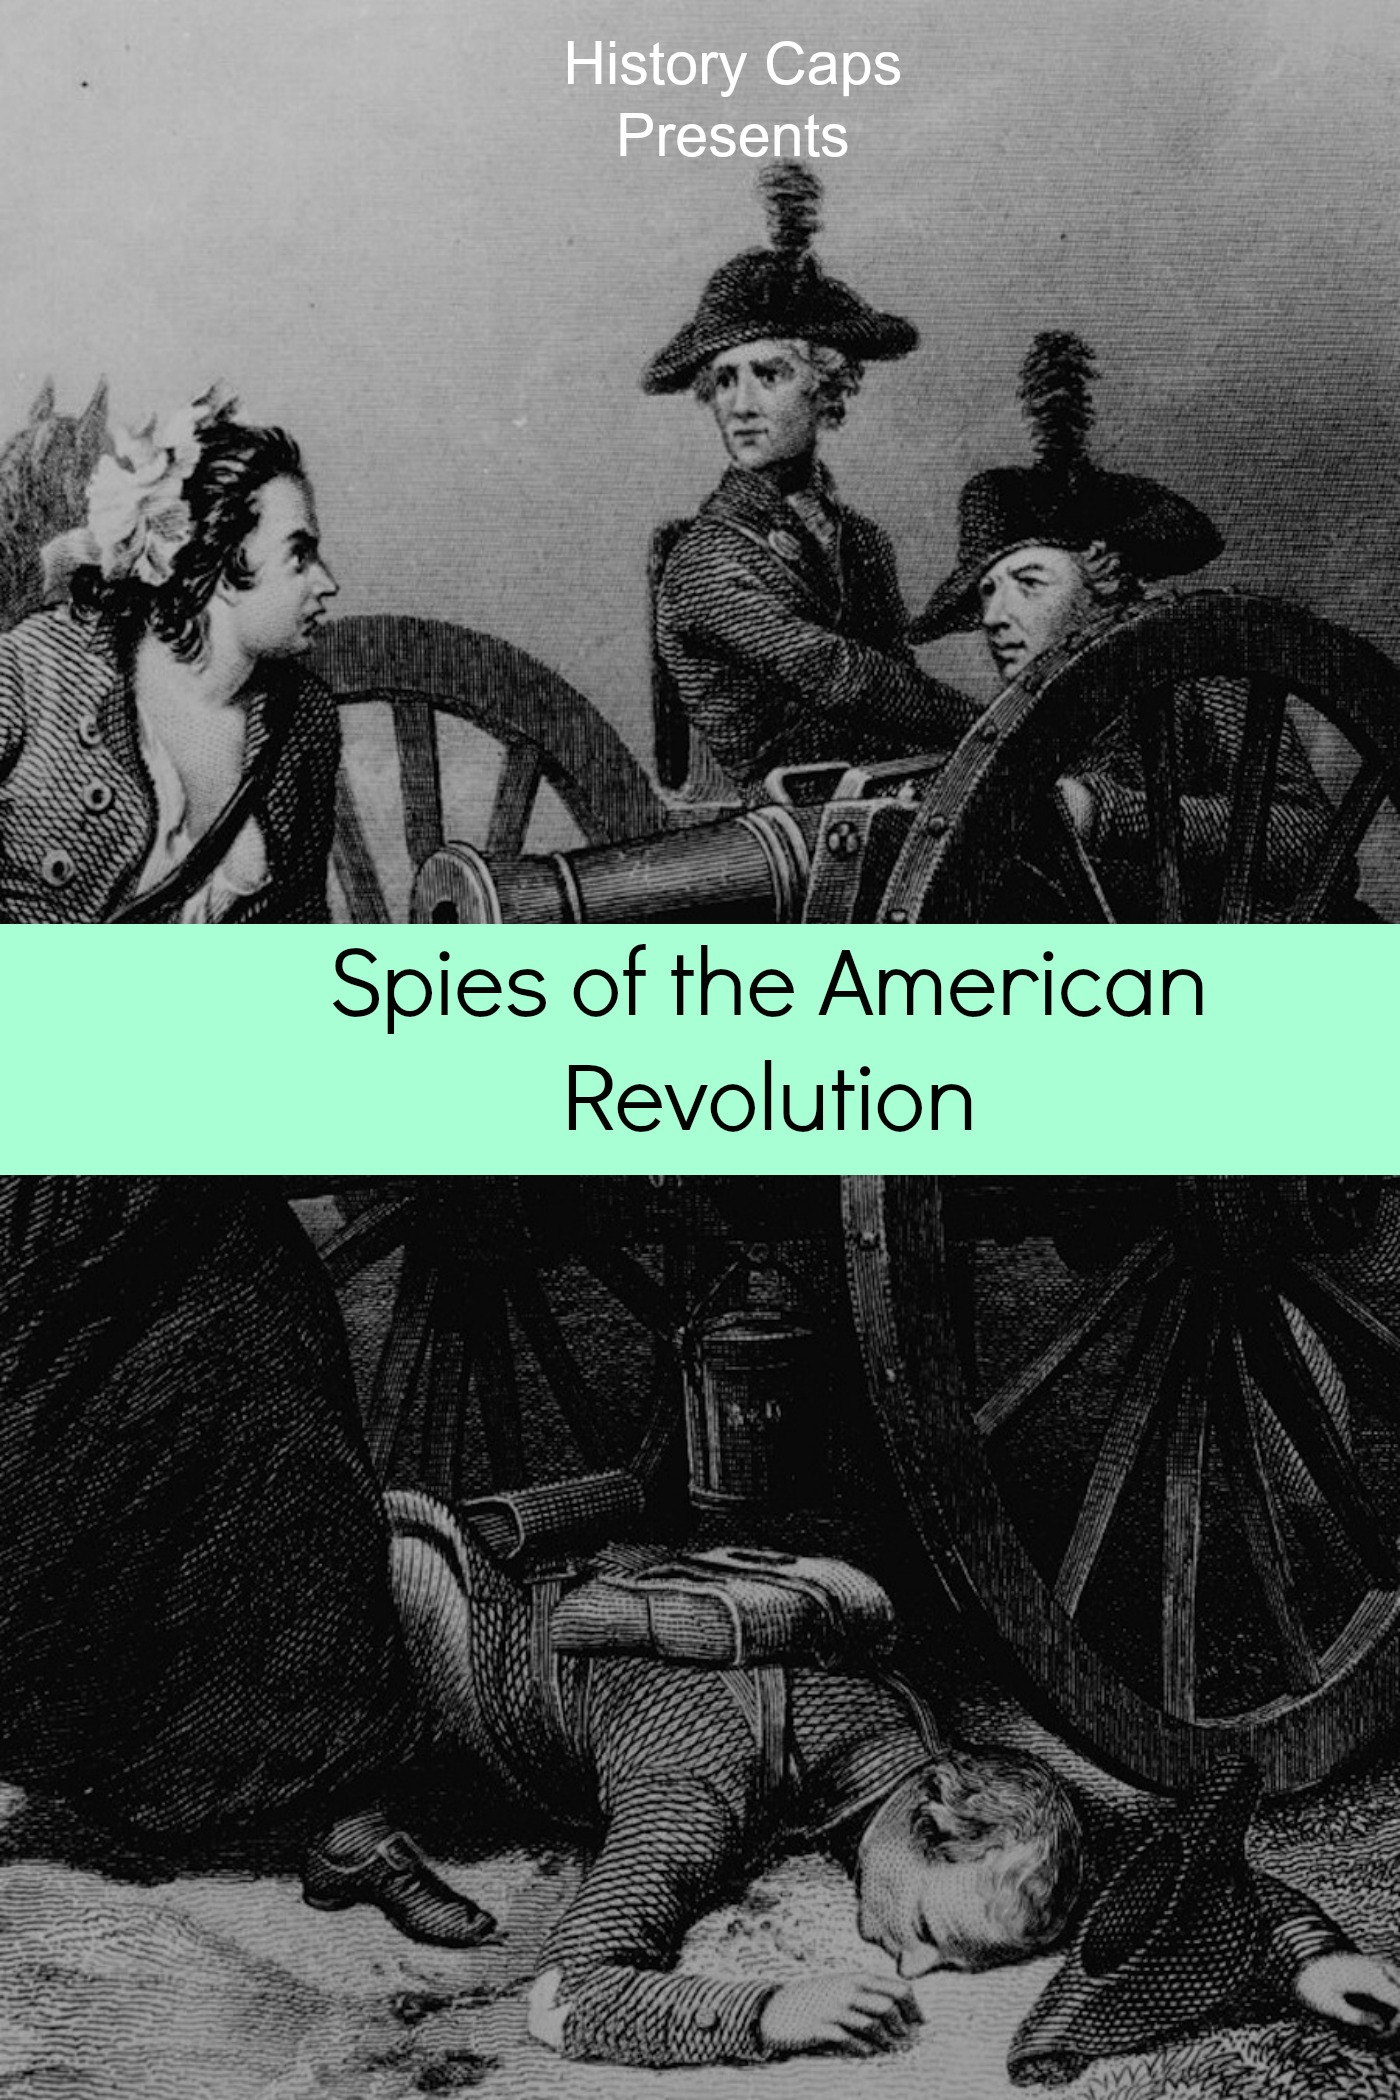 spies of the american revolution essay He established a secret police force that relied heavily on spies and a brief summary of the american revolution essay the american revolution the.